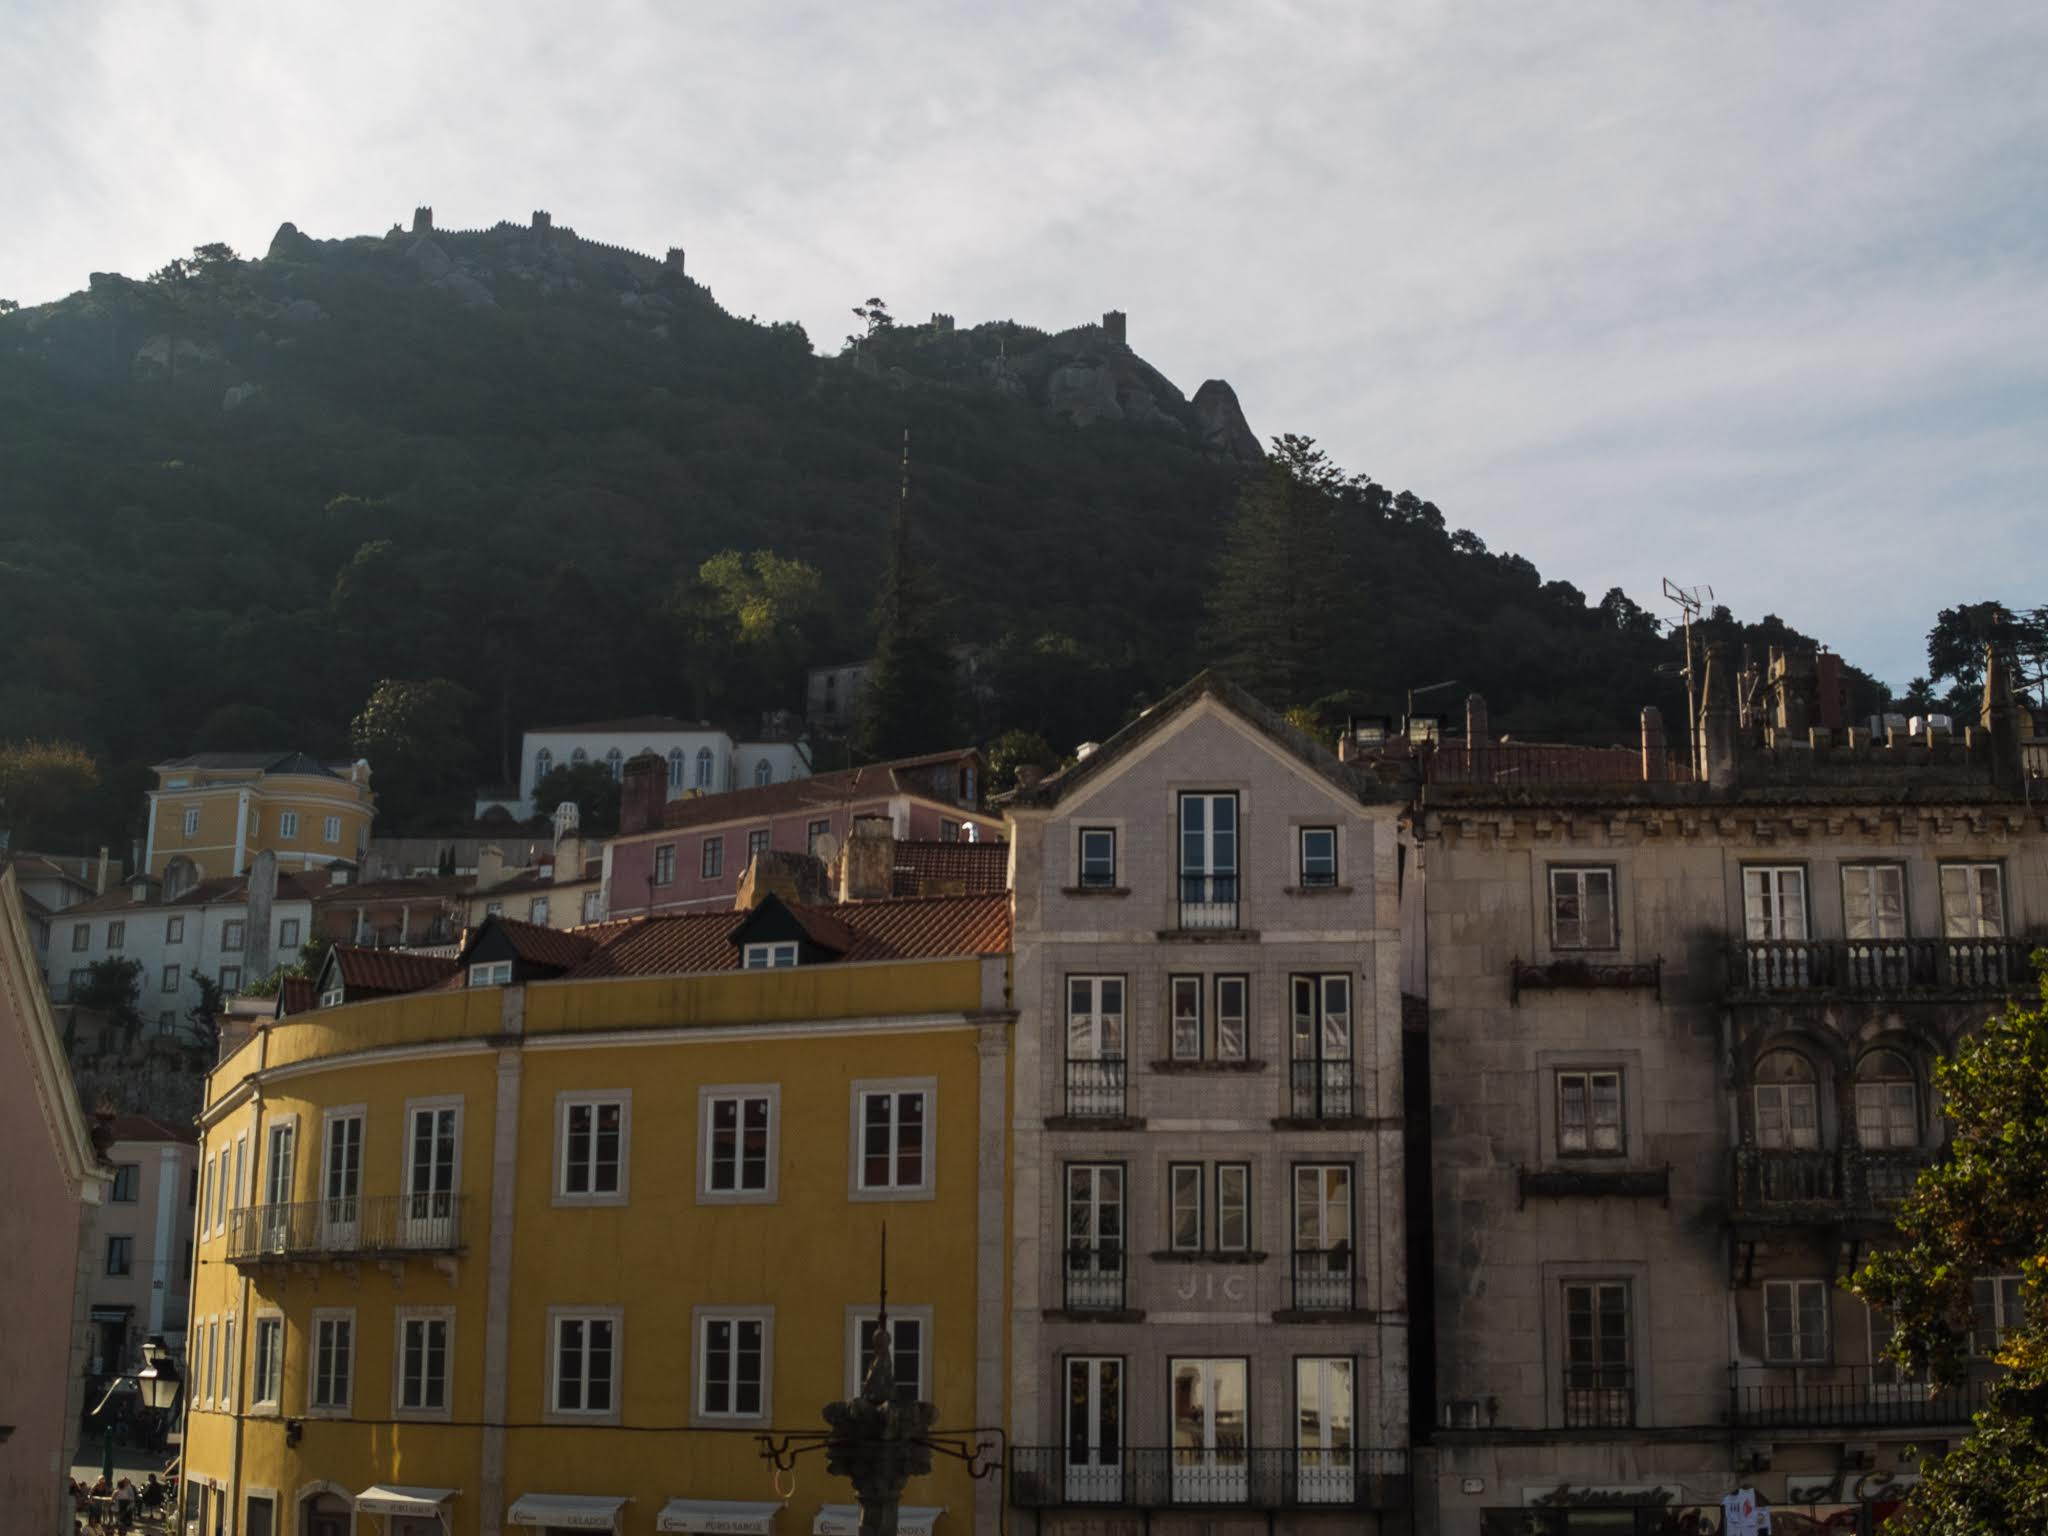 View of buildings on Sintra's main square across from the Sintra National Palace.